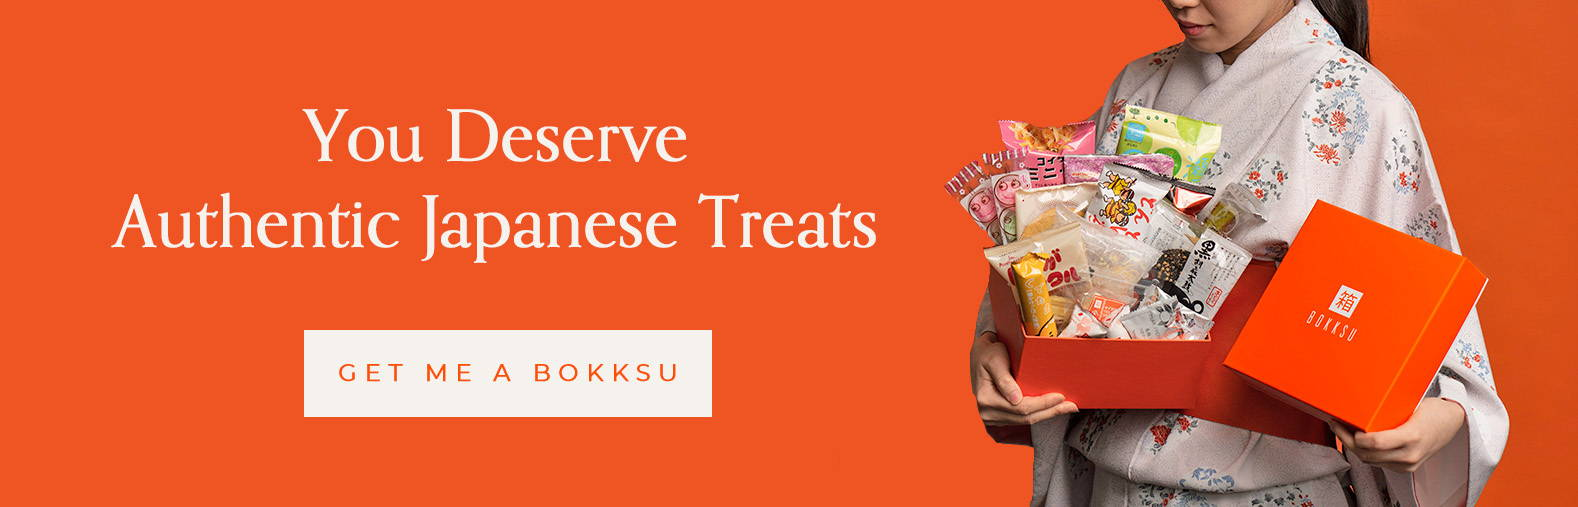 join bokksu japanese snack subscription box service todau